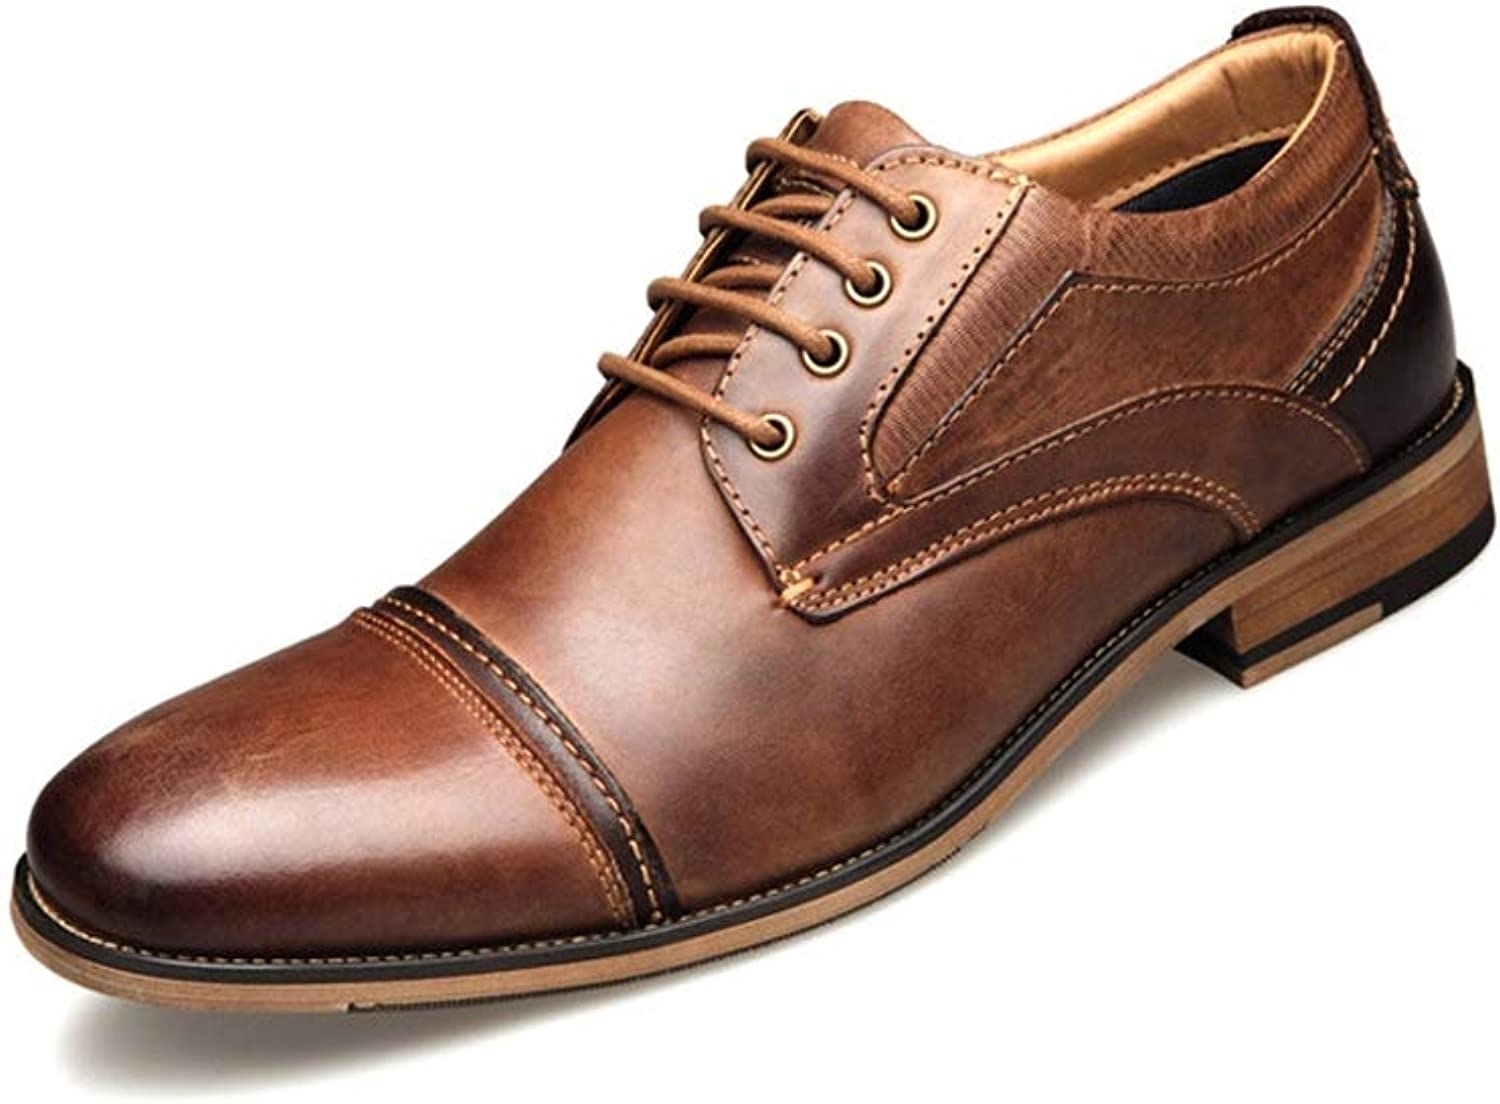 CATEDOT Oxford Men's shoes Business Dress shoes First layer Cowhide Lace up Euramerican Large Size Leather shoes (color   Brown, Size   6.5UK)